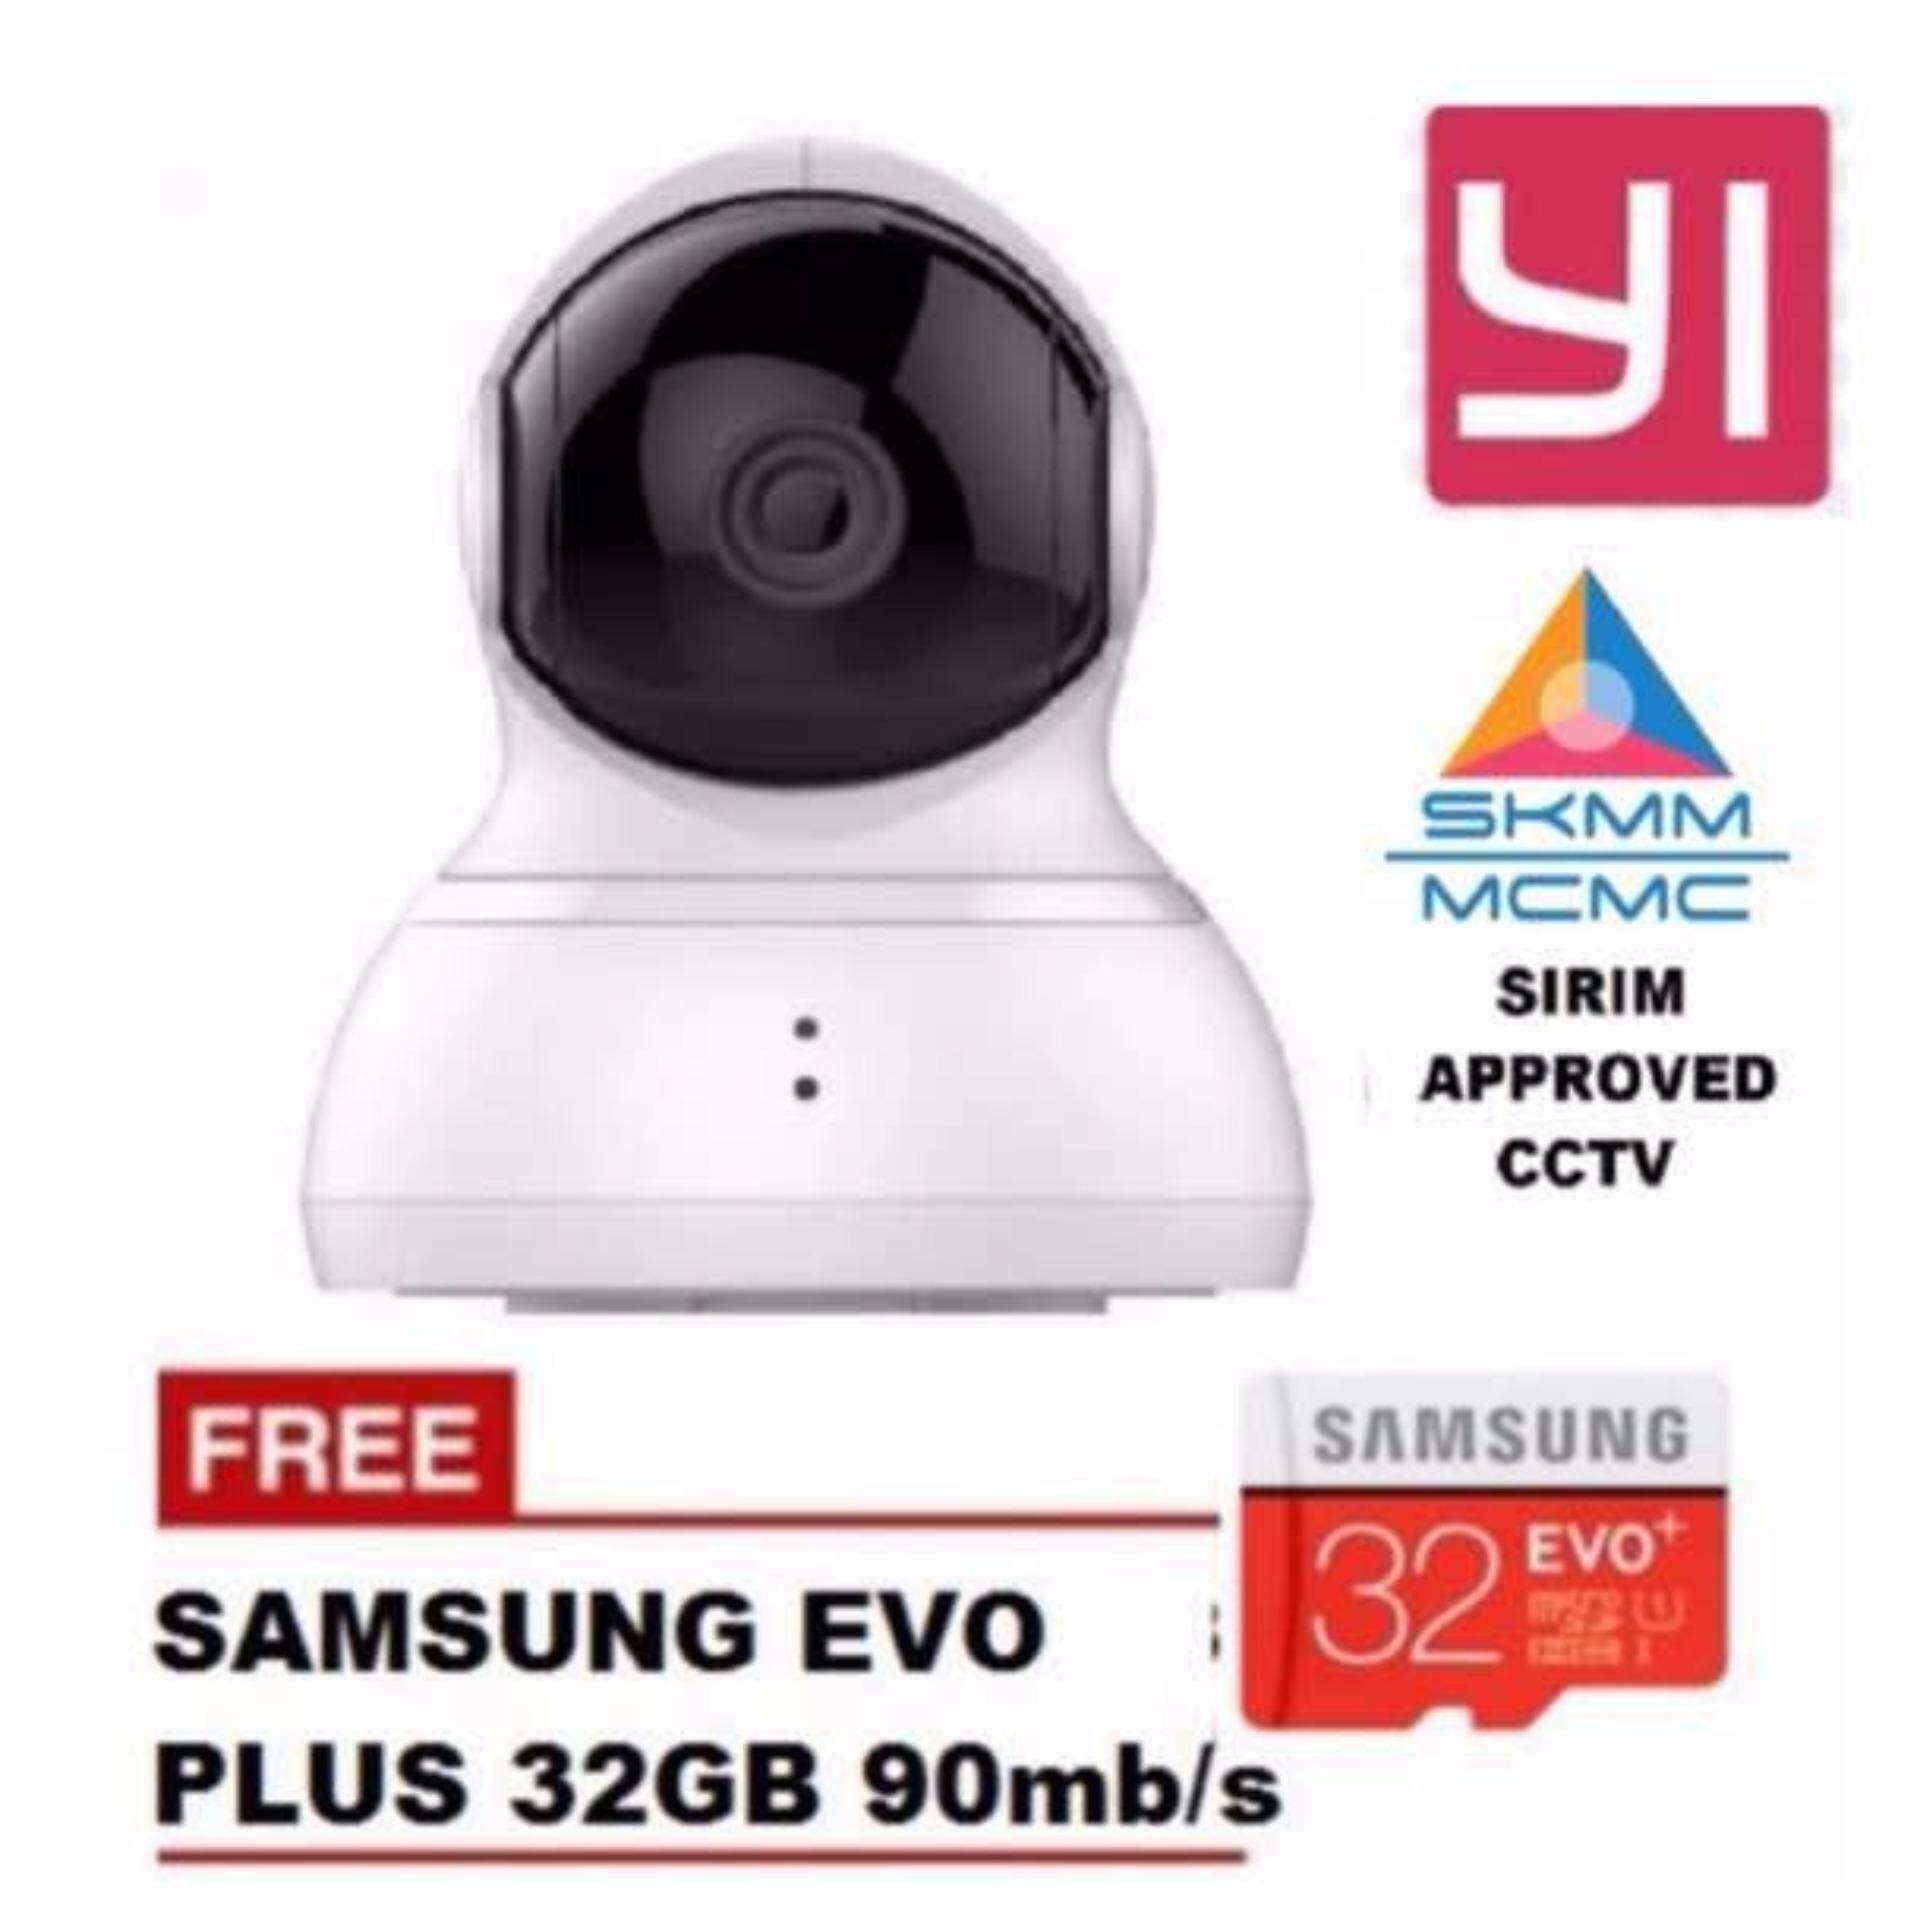 Cctv Security Cameras By Xiaomi Reviews Ratings And Best Price In Original Yi Dome 720p Camera International Version White Hd Samsung 32gb Cl10 Bundle